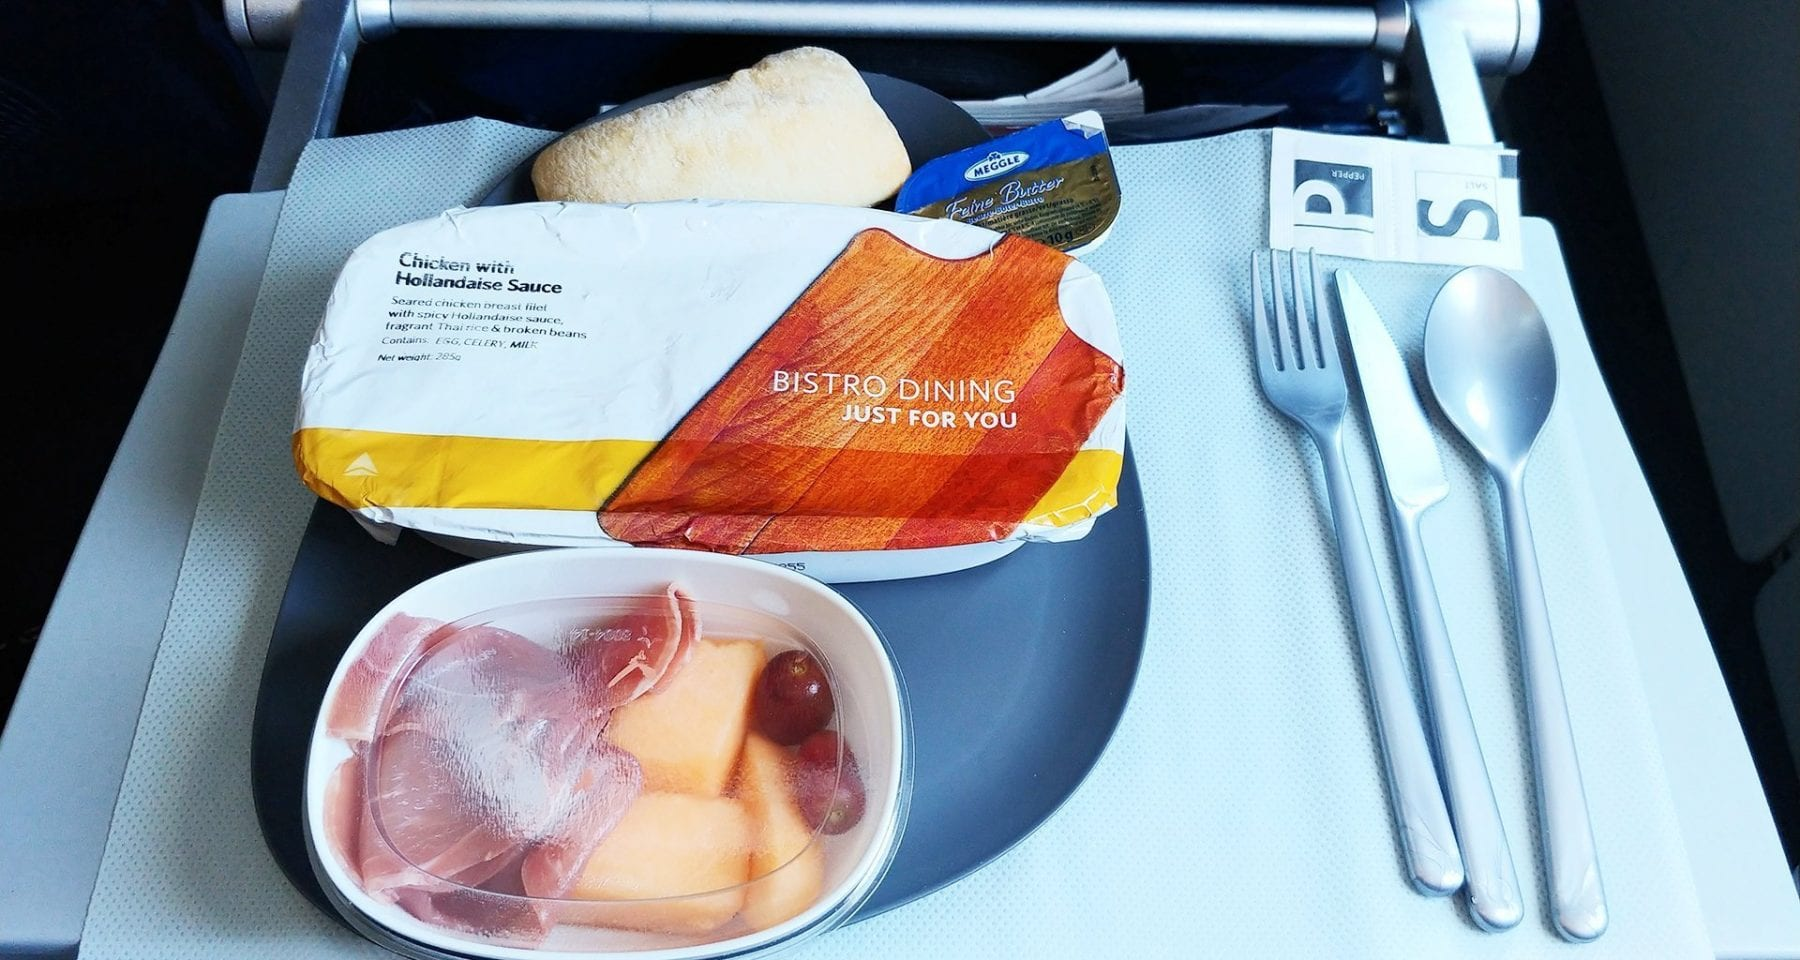 Delta new main cabin service hot meal